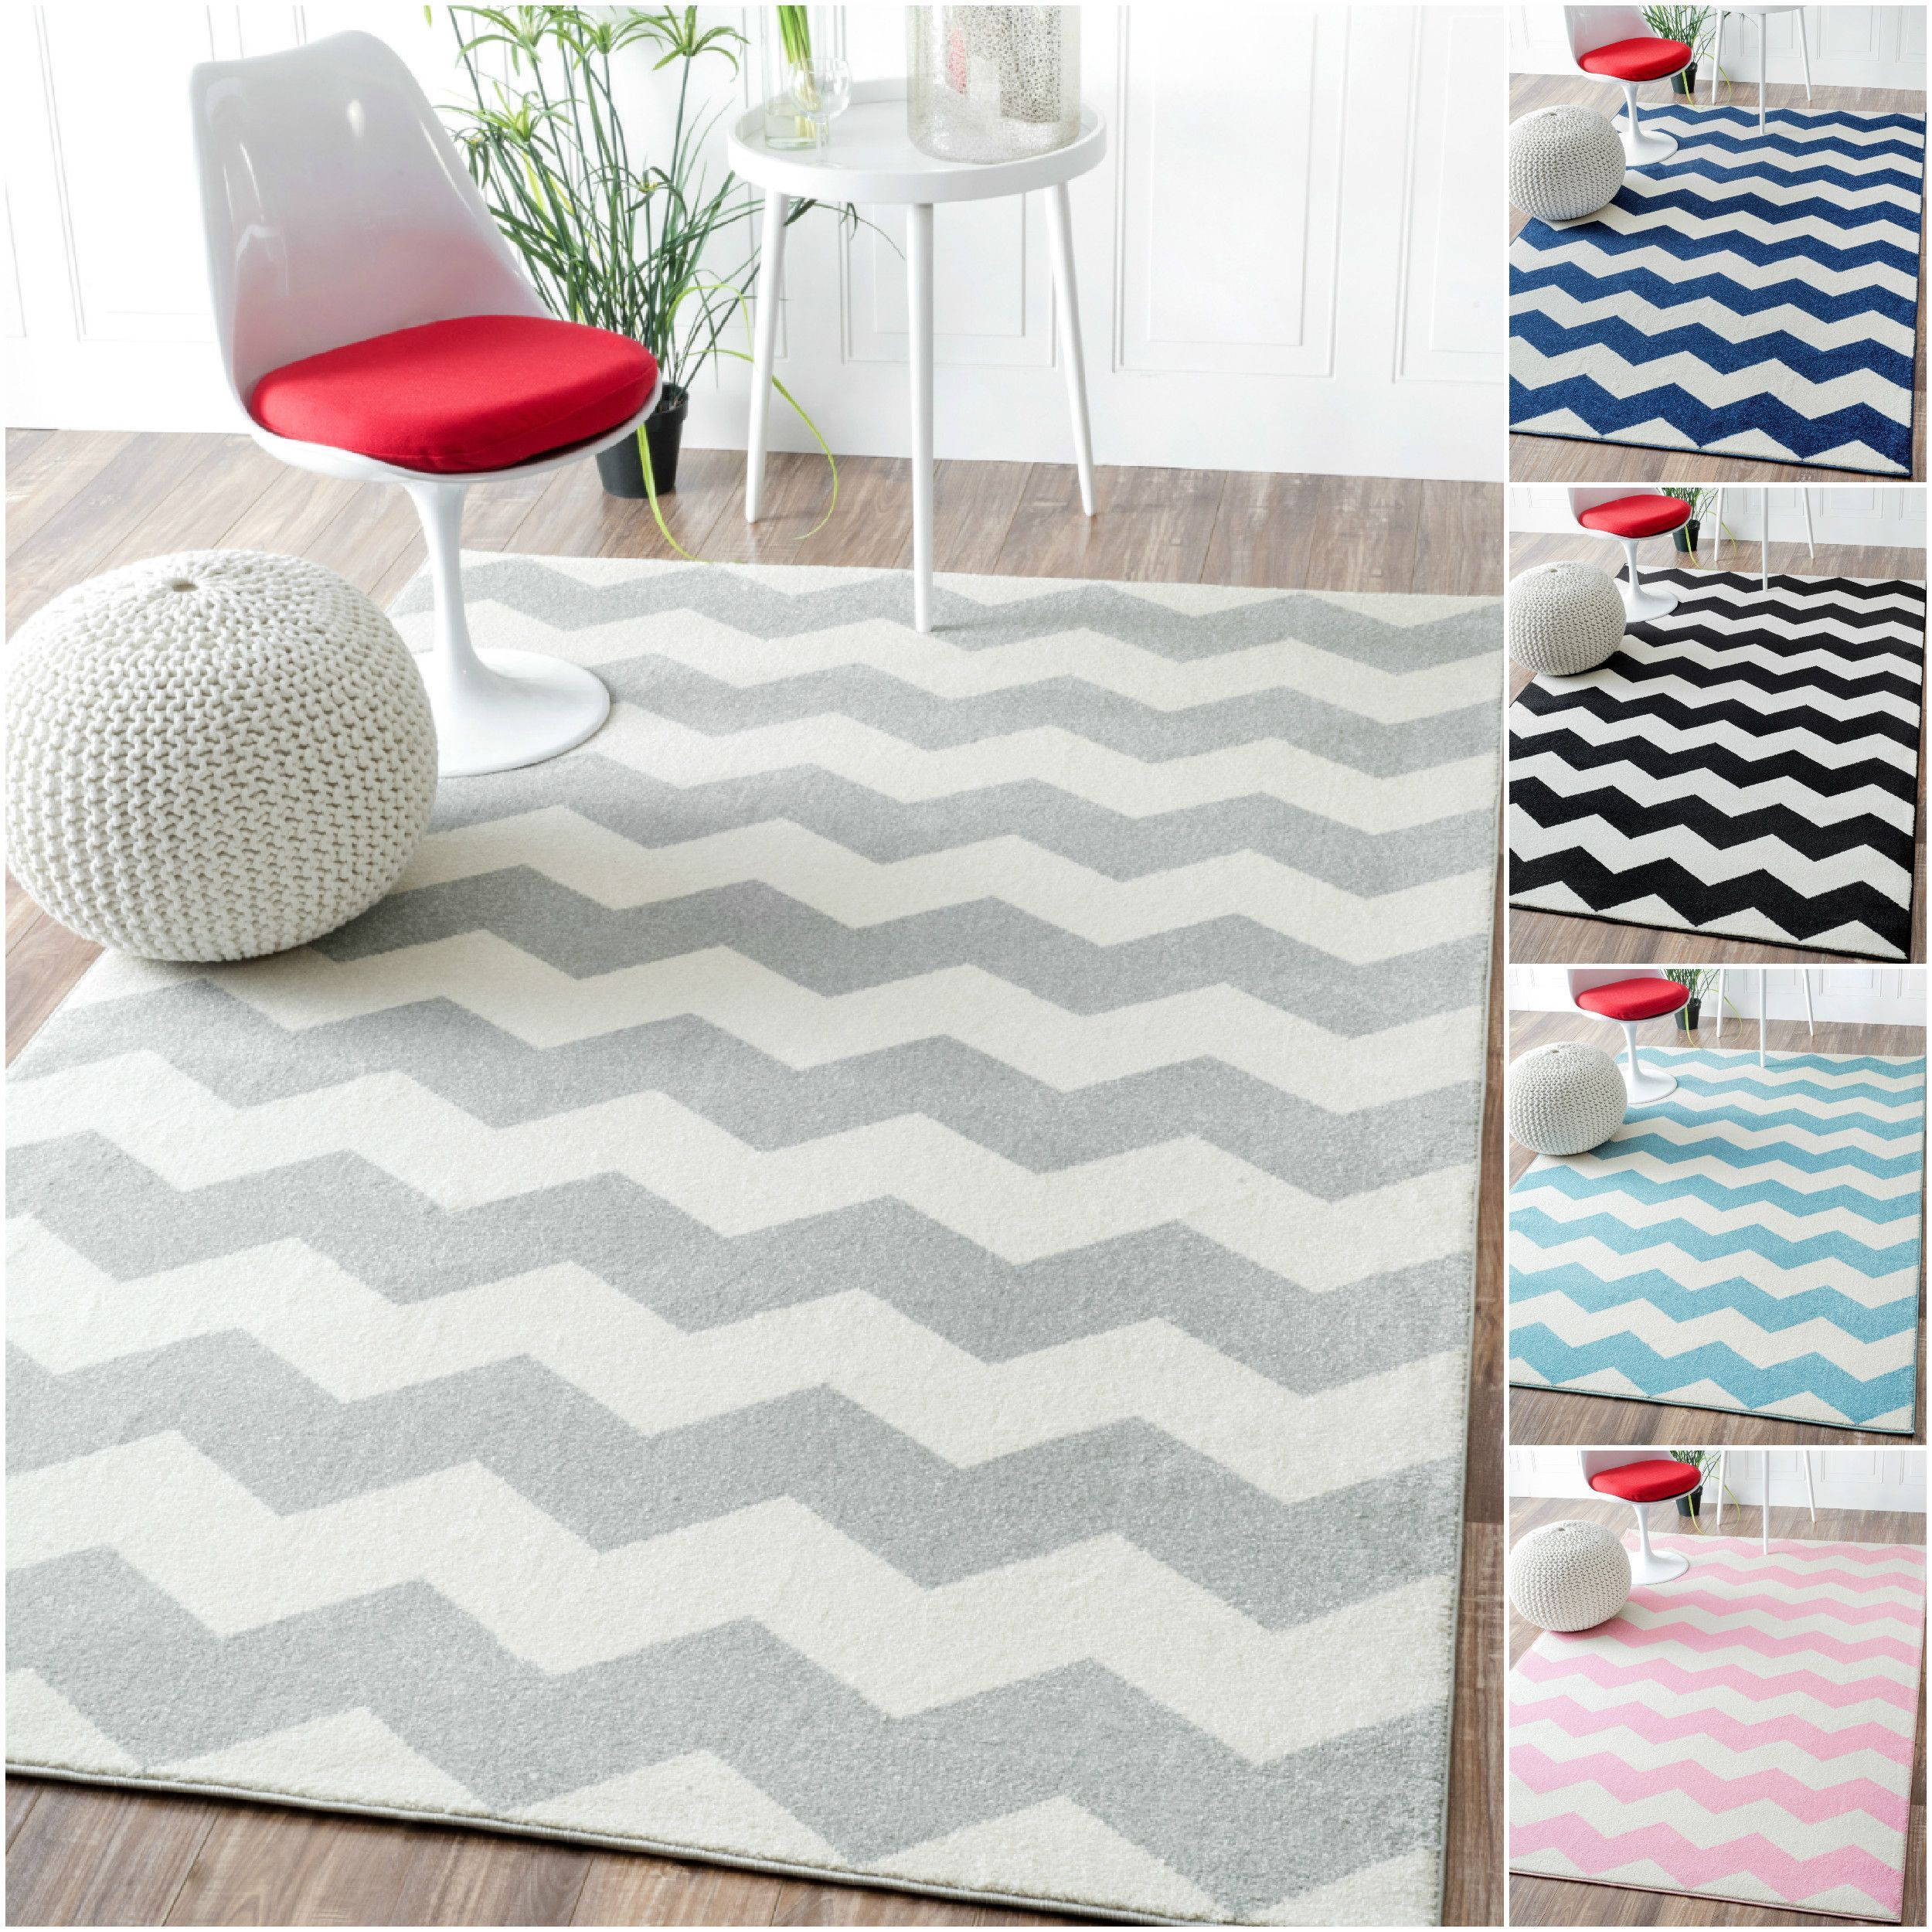 Nuloom Geometric Chevron Kids Rug 5 3 X 7 9 By